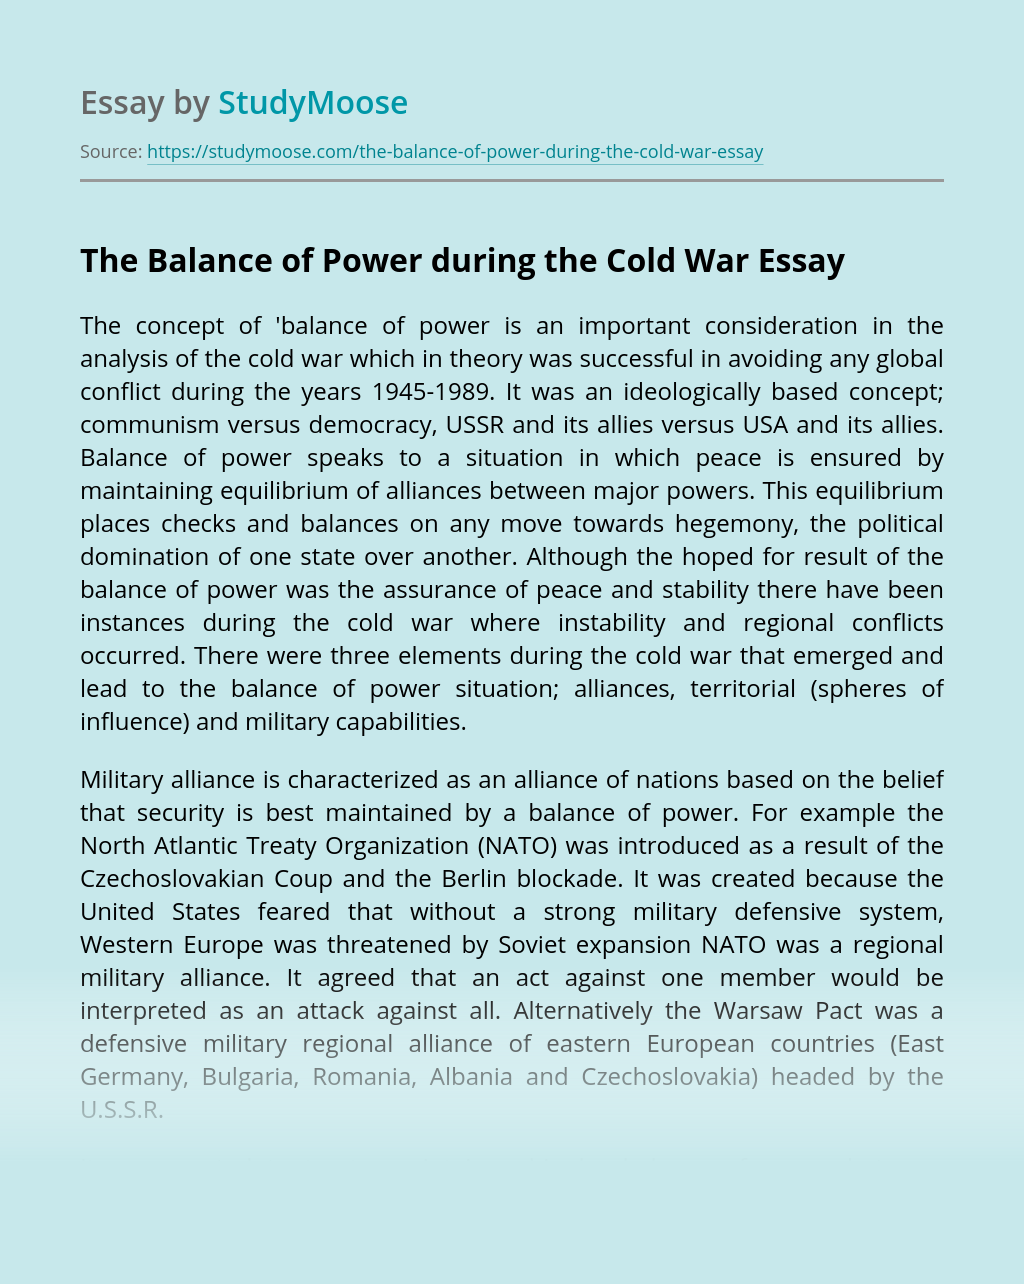 The Balance of Power during the Cold War